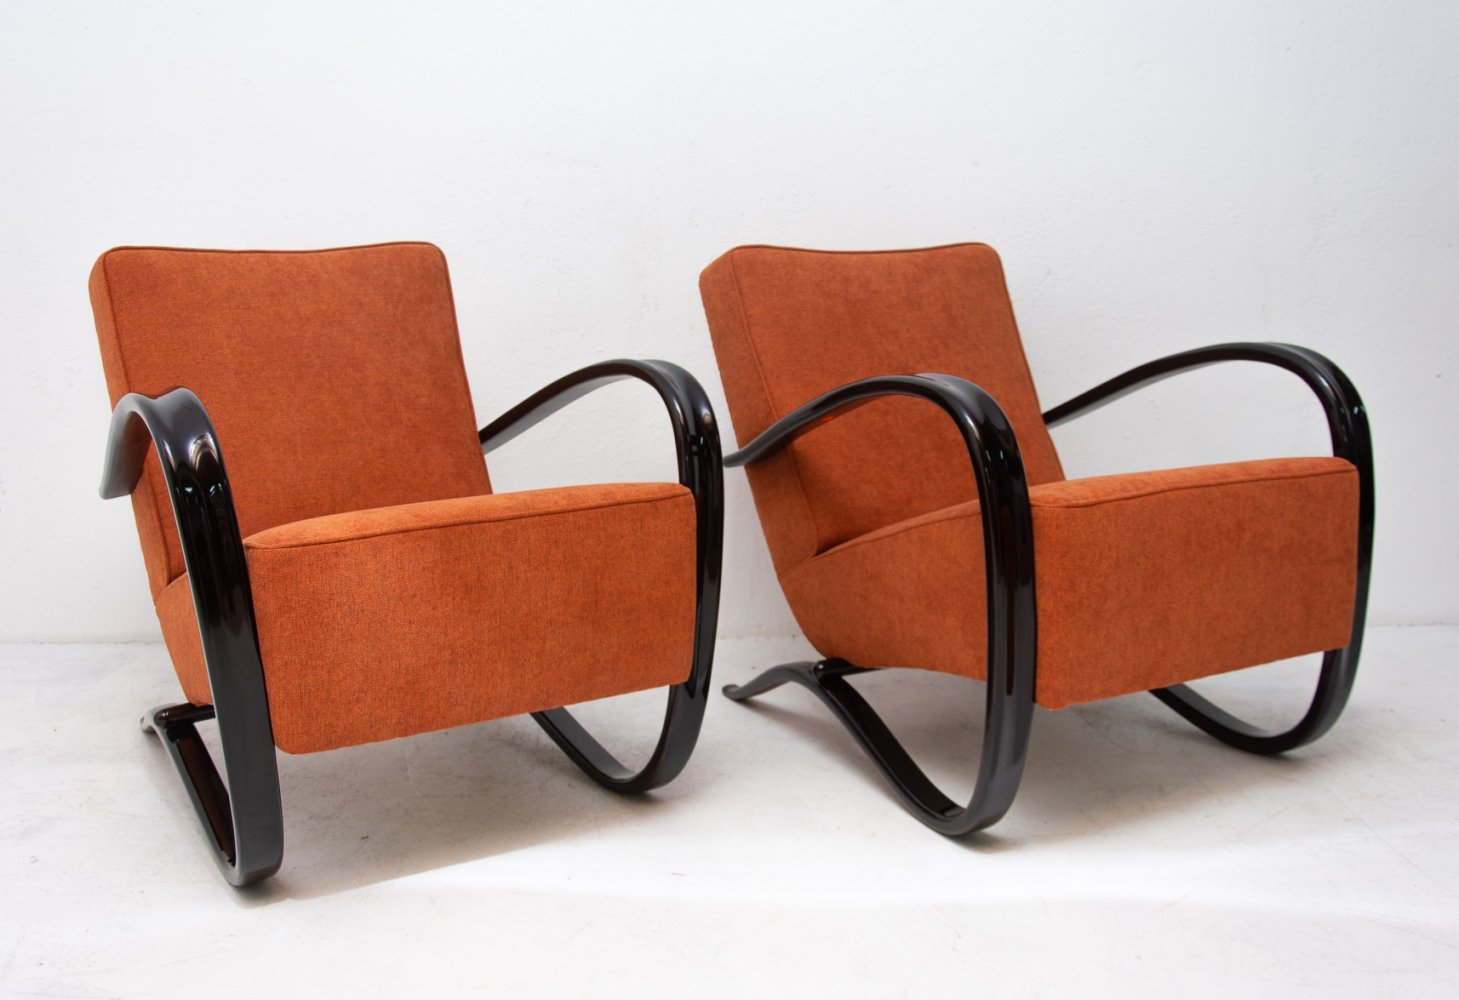 Pair of H-269 arm chairs by Jindřich Halabala for UP Závody, 1930s